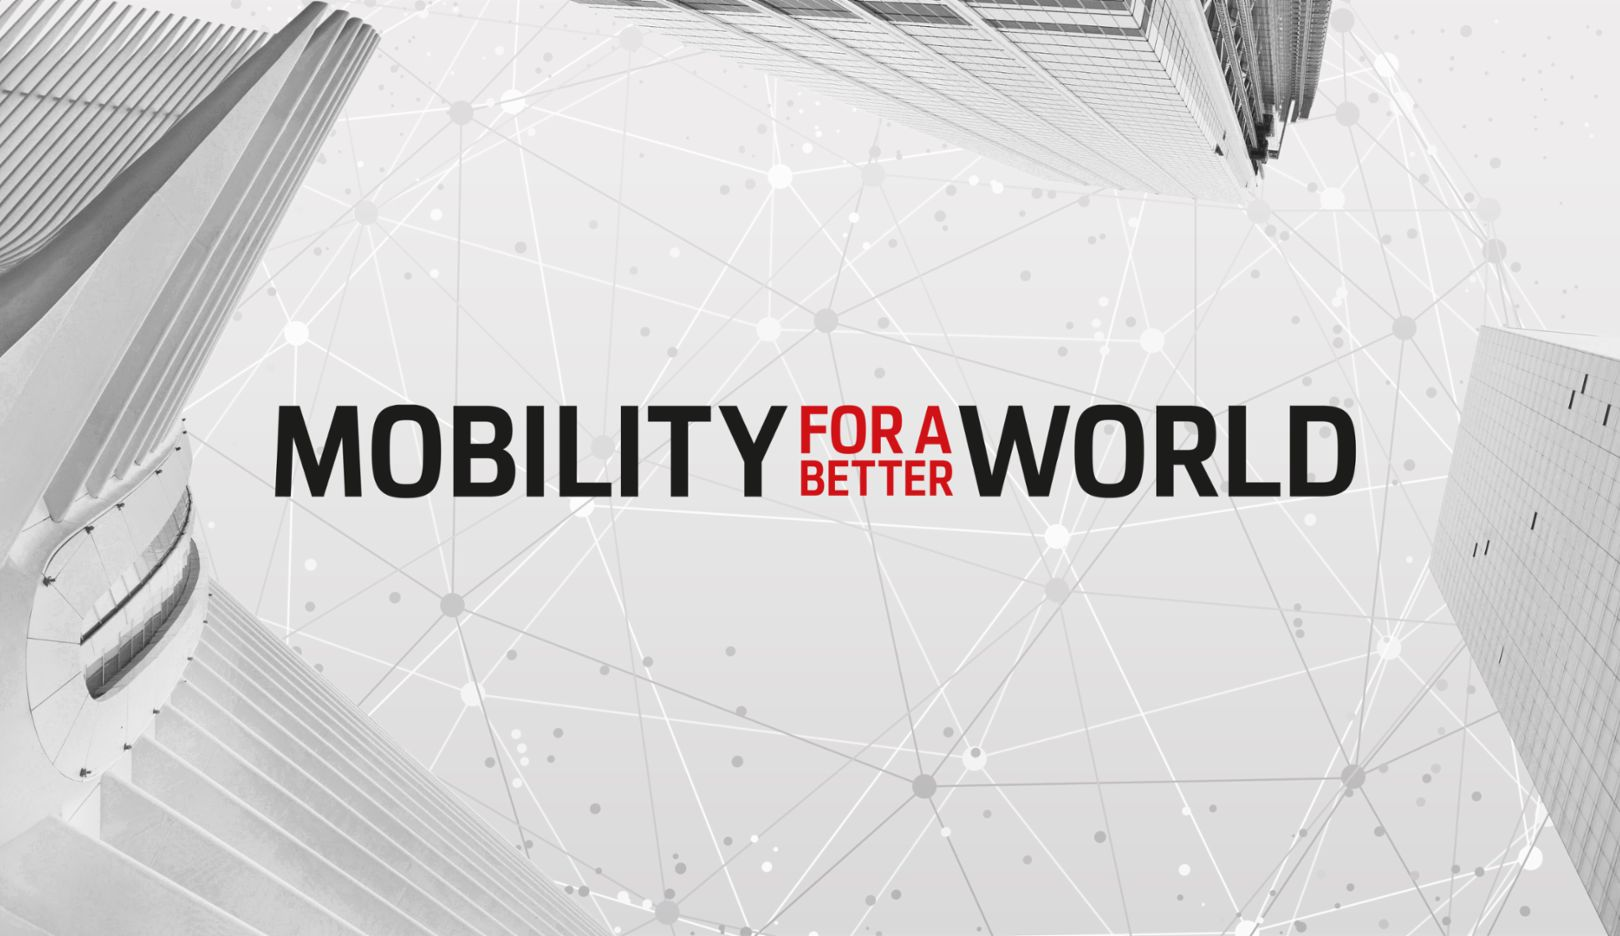 Mobility for a better world - apply now!